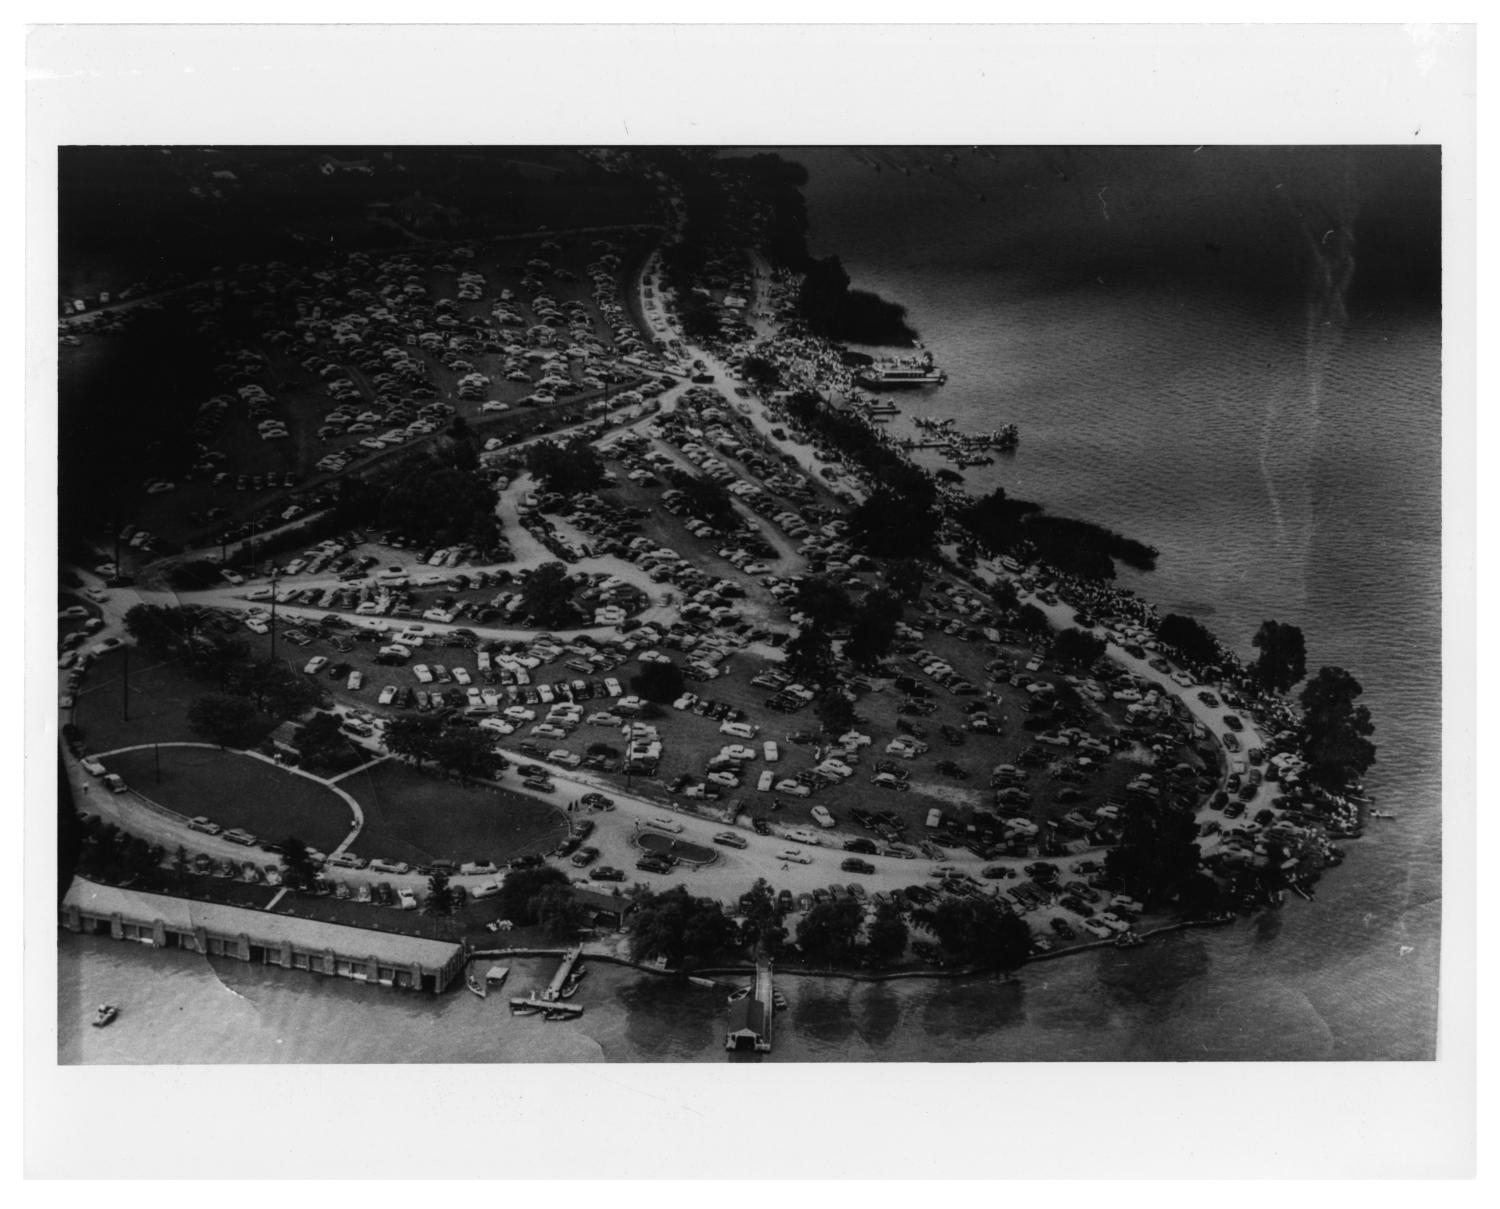 [Aerial View of White Rock Lake]                                                                                                      [Sequence #]: 1 of 2